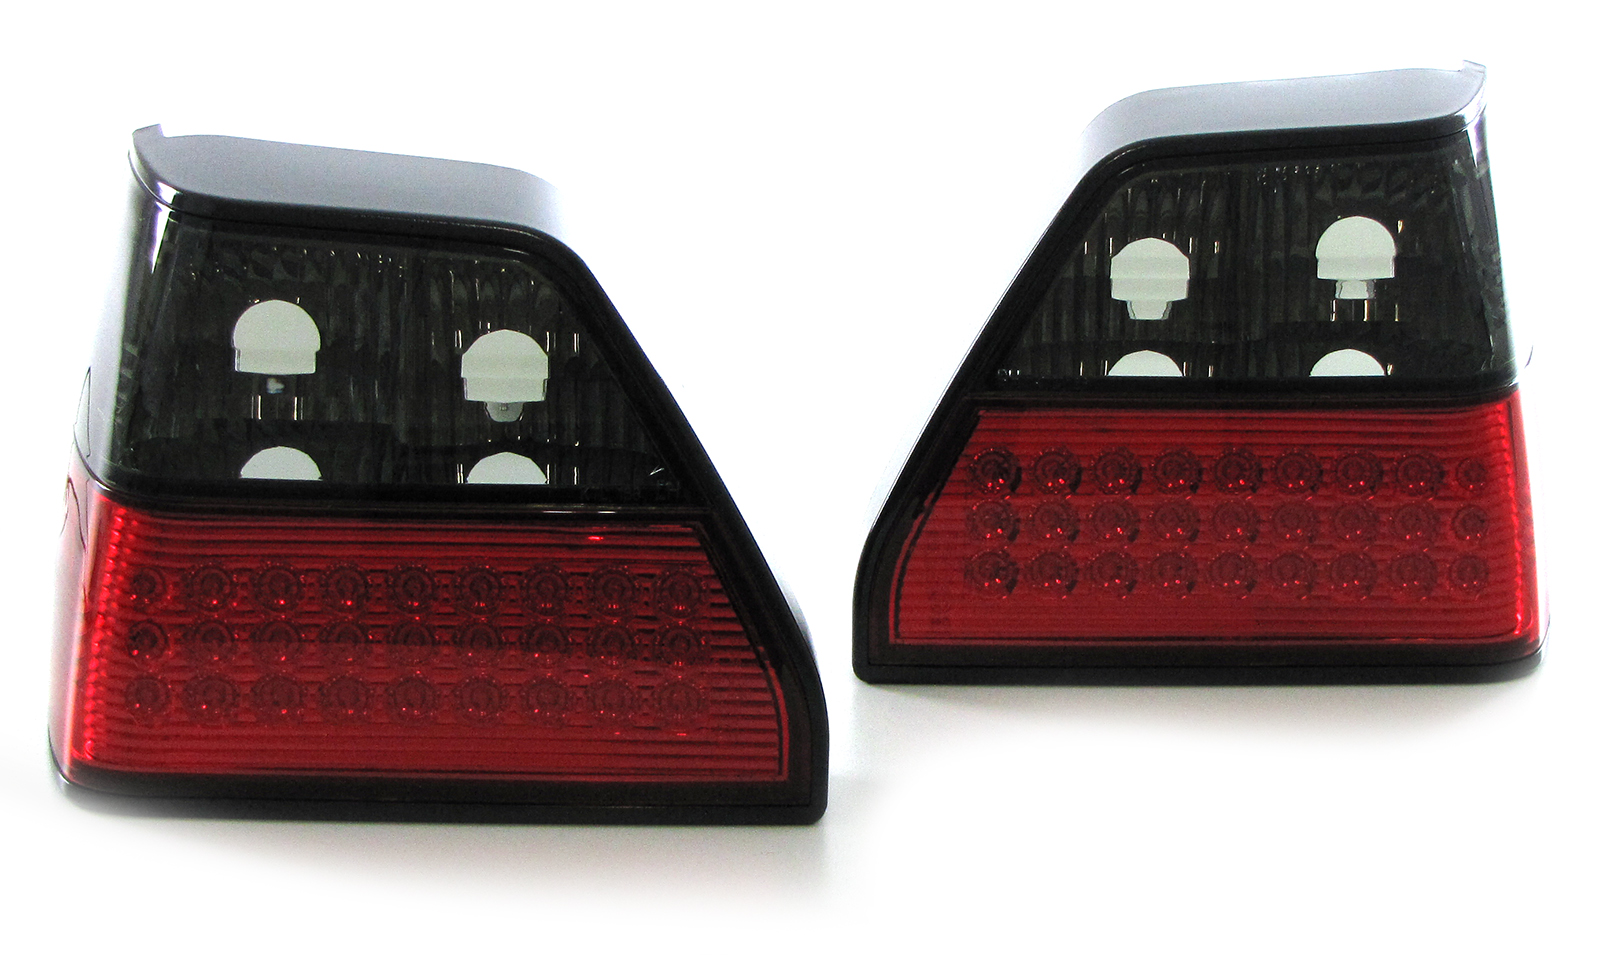 VW Golf 2 Farolins Led fumado